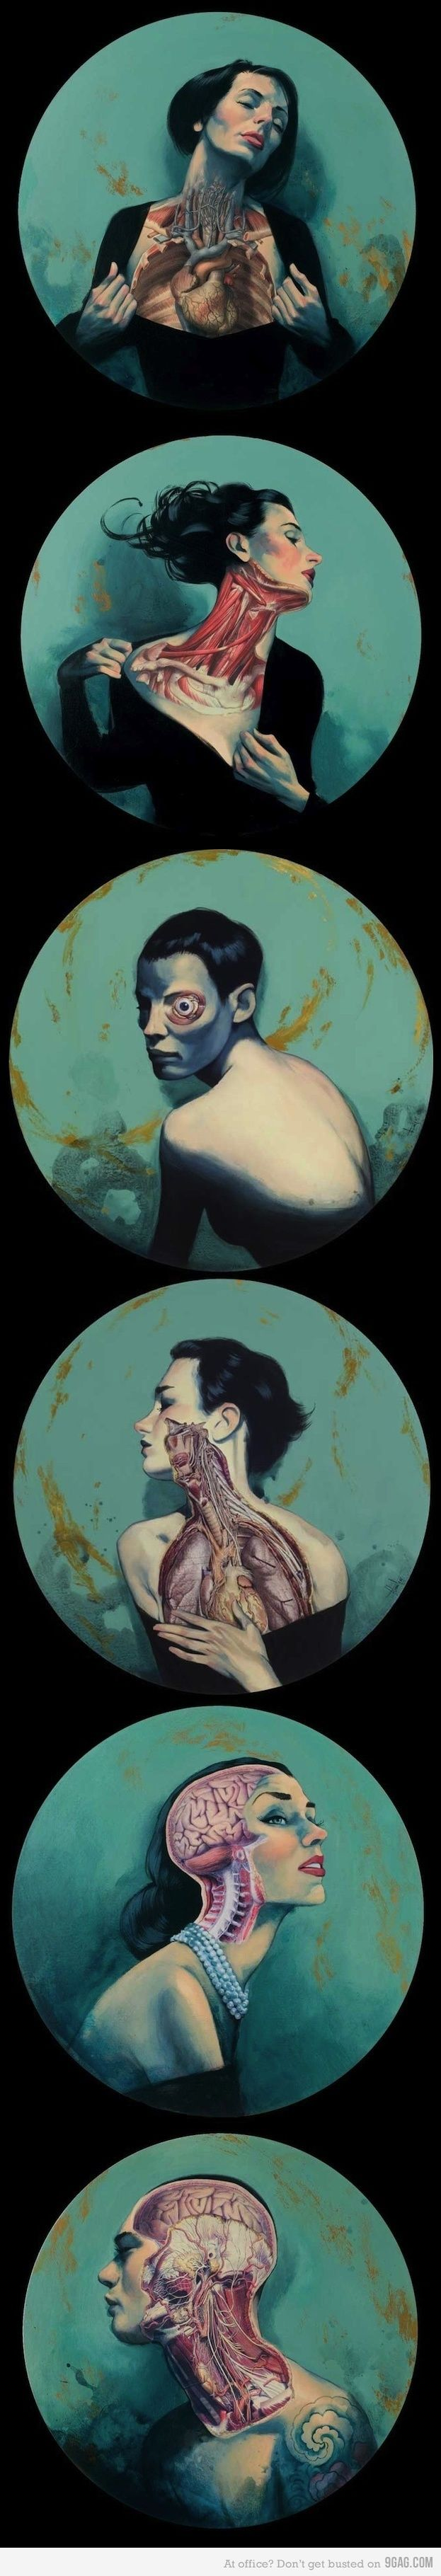 I want a print of this for my room... Fernando Vicente. Gorgeously done.